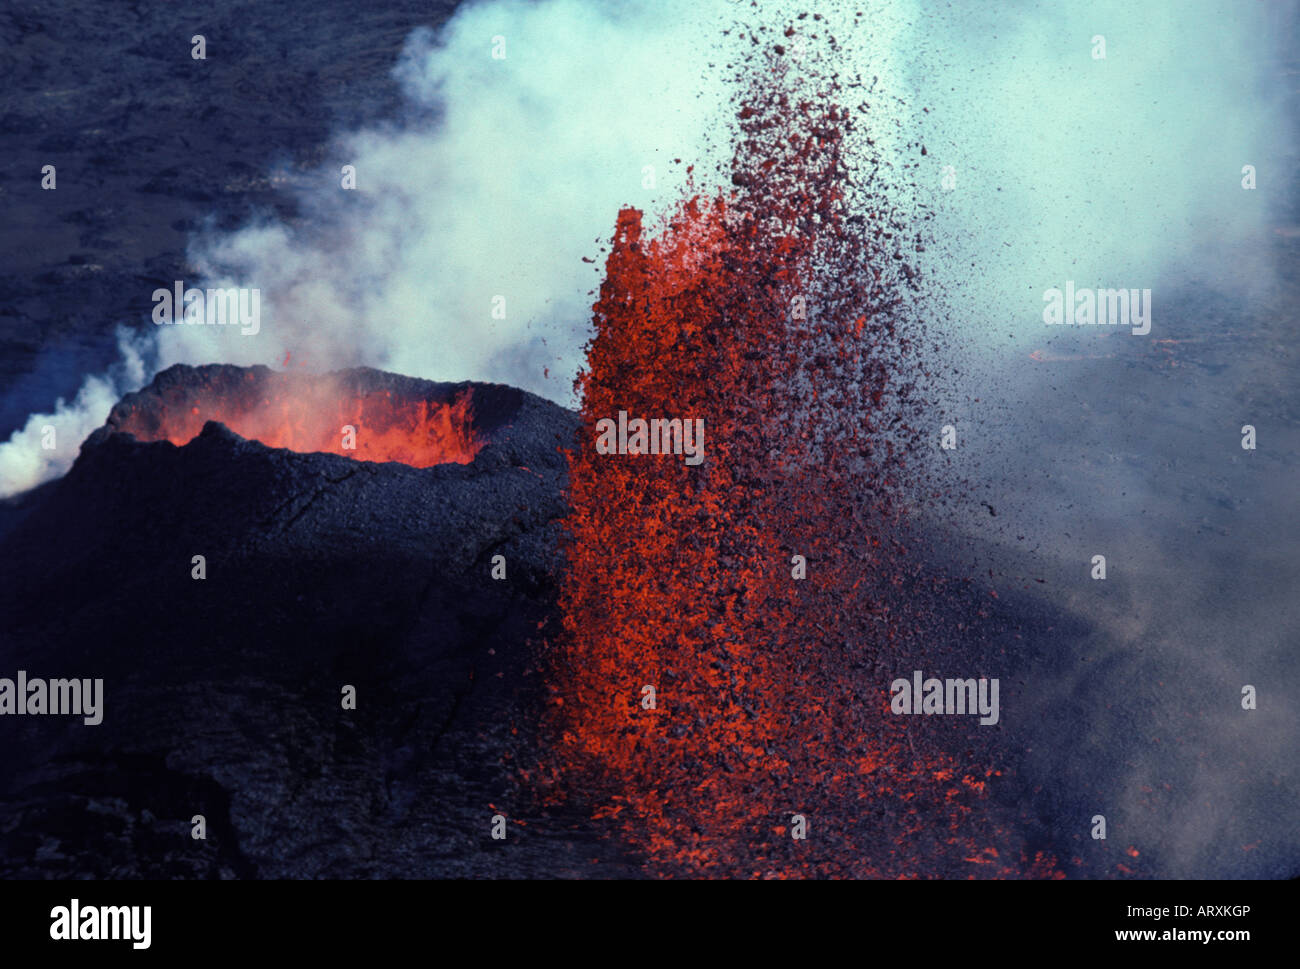 Kilauea Volcano erupting with fountaining lava and steam. Hawaii Volcanoes National Park, Puu Oo vent - Stock Image